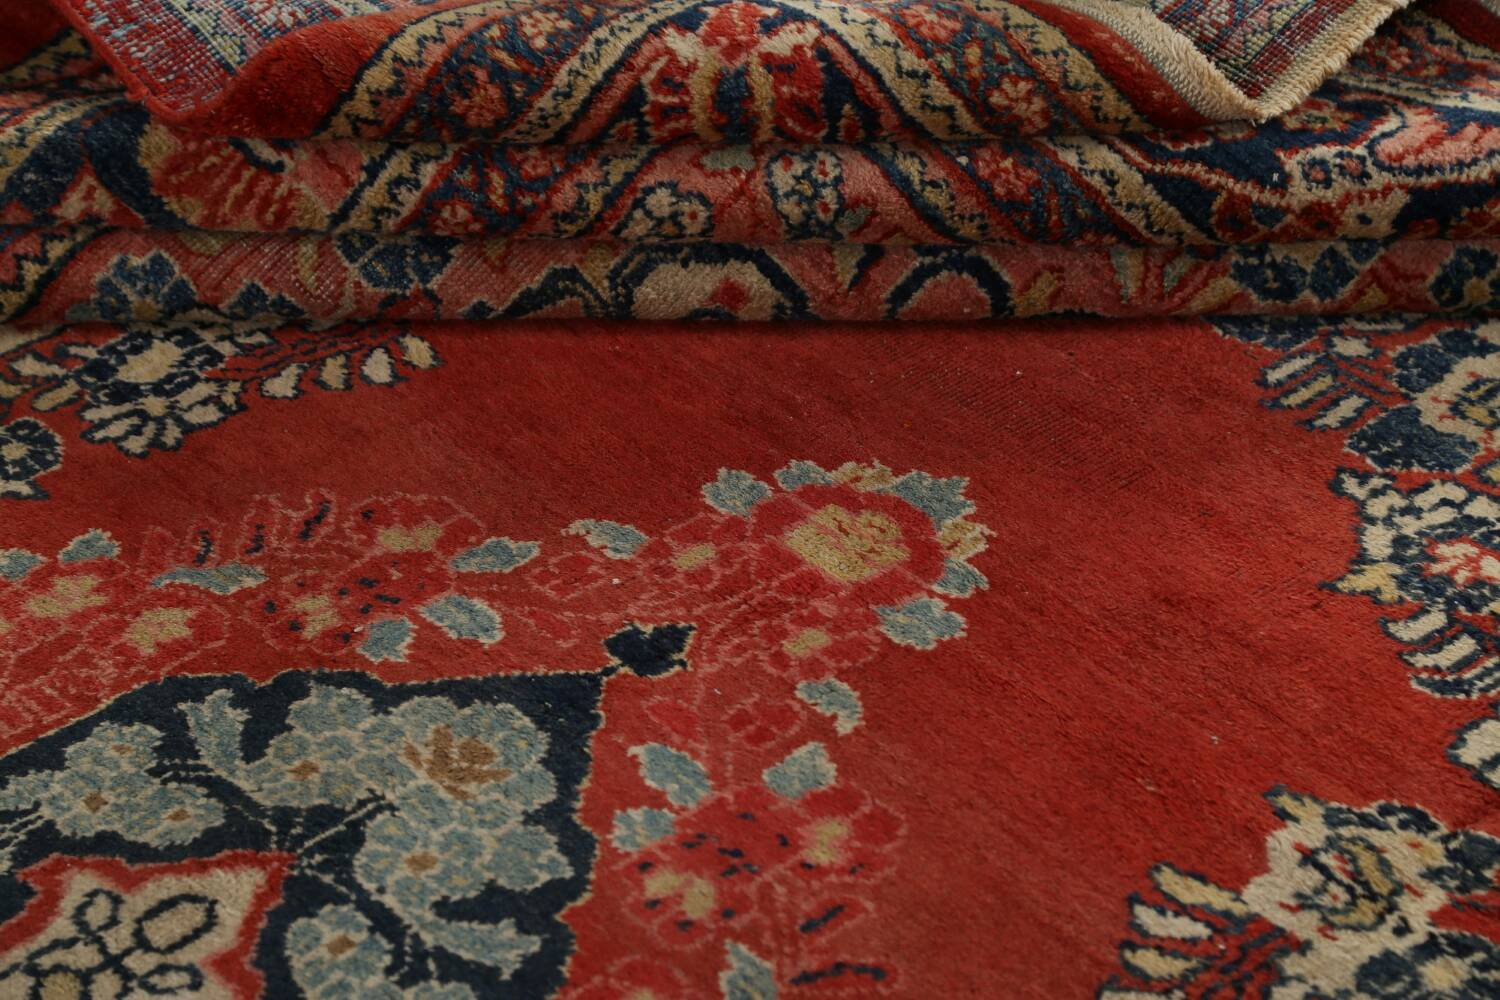 Antique Floral Mahal Persian Area Rug 8x11 image 18